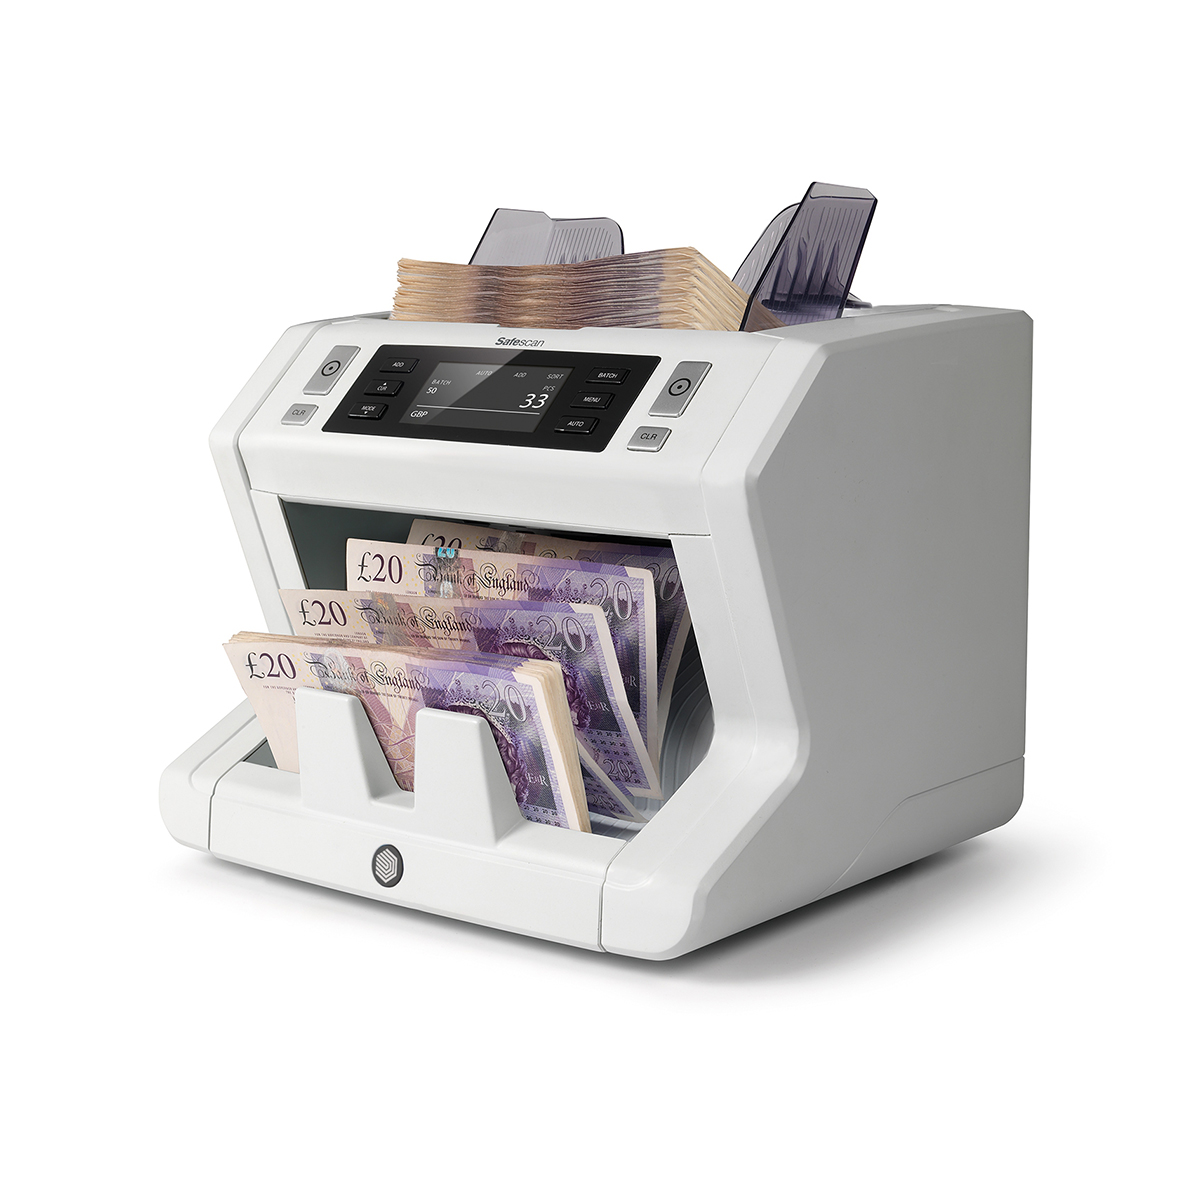 Safescan 2660-S Automatic Banknote Counter with 6 Point Counterfeit Detection